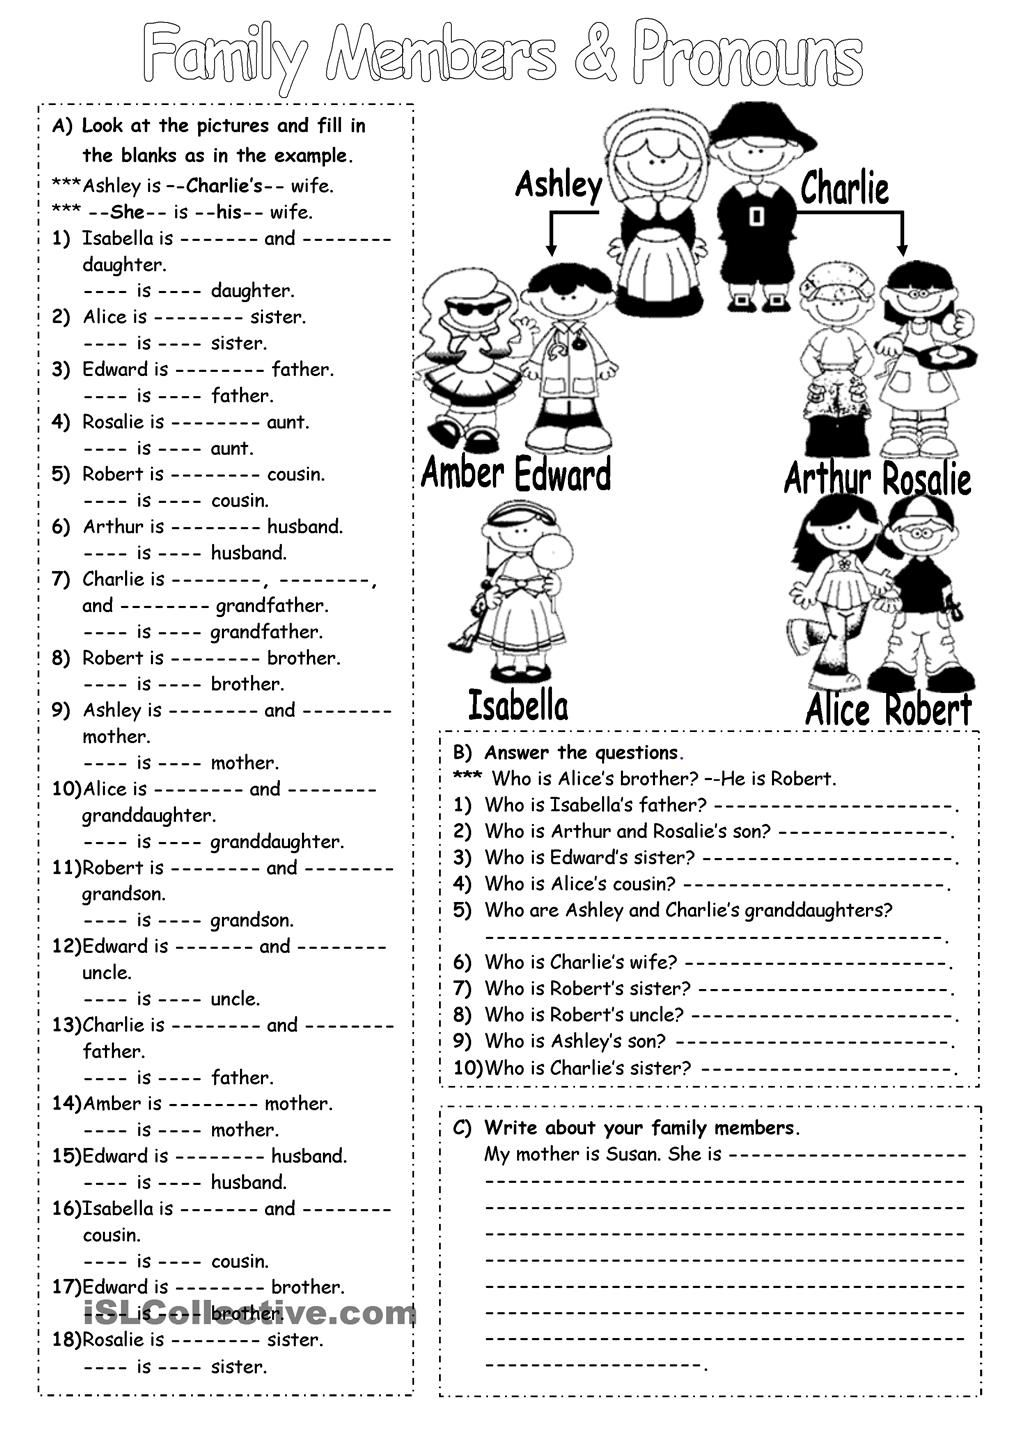 Worksheets Esl Civics Worksheets family members vocabulary pinterest worksheets activity english languageeslgrammarvocabularyworksheetsstudent centered resources